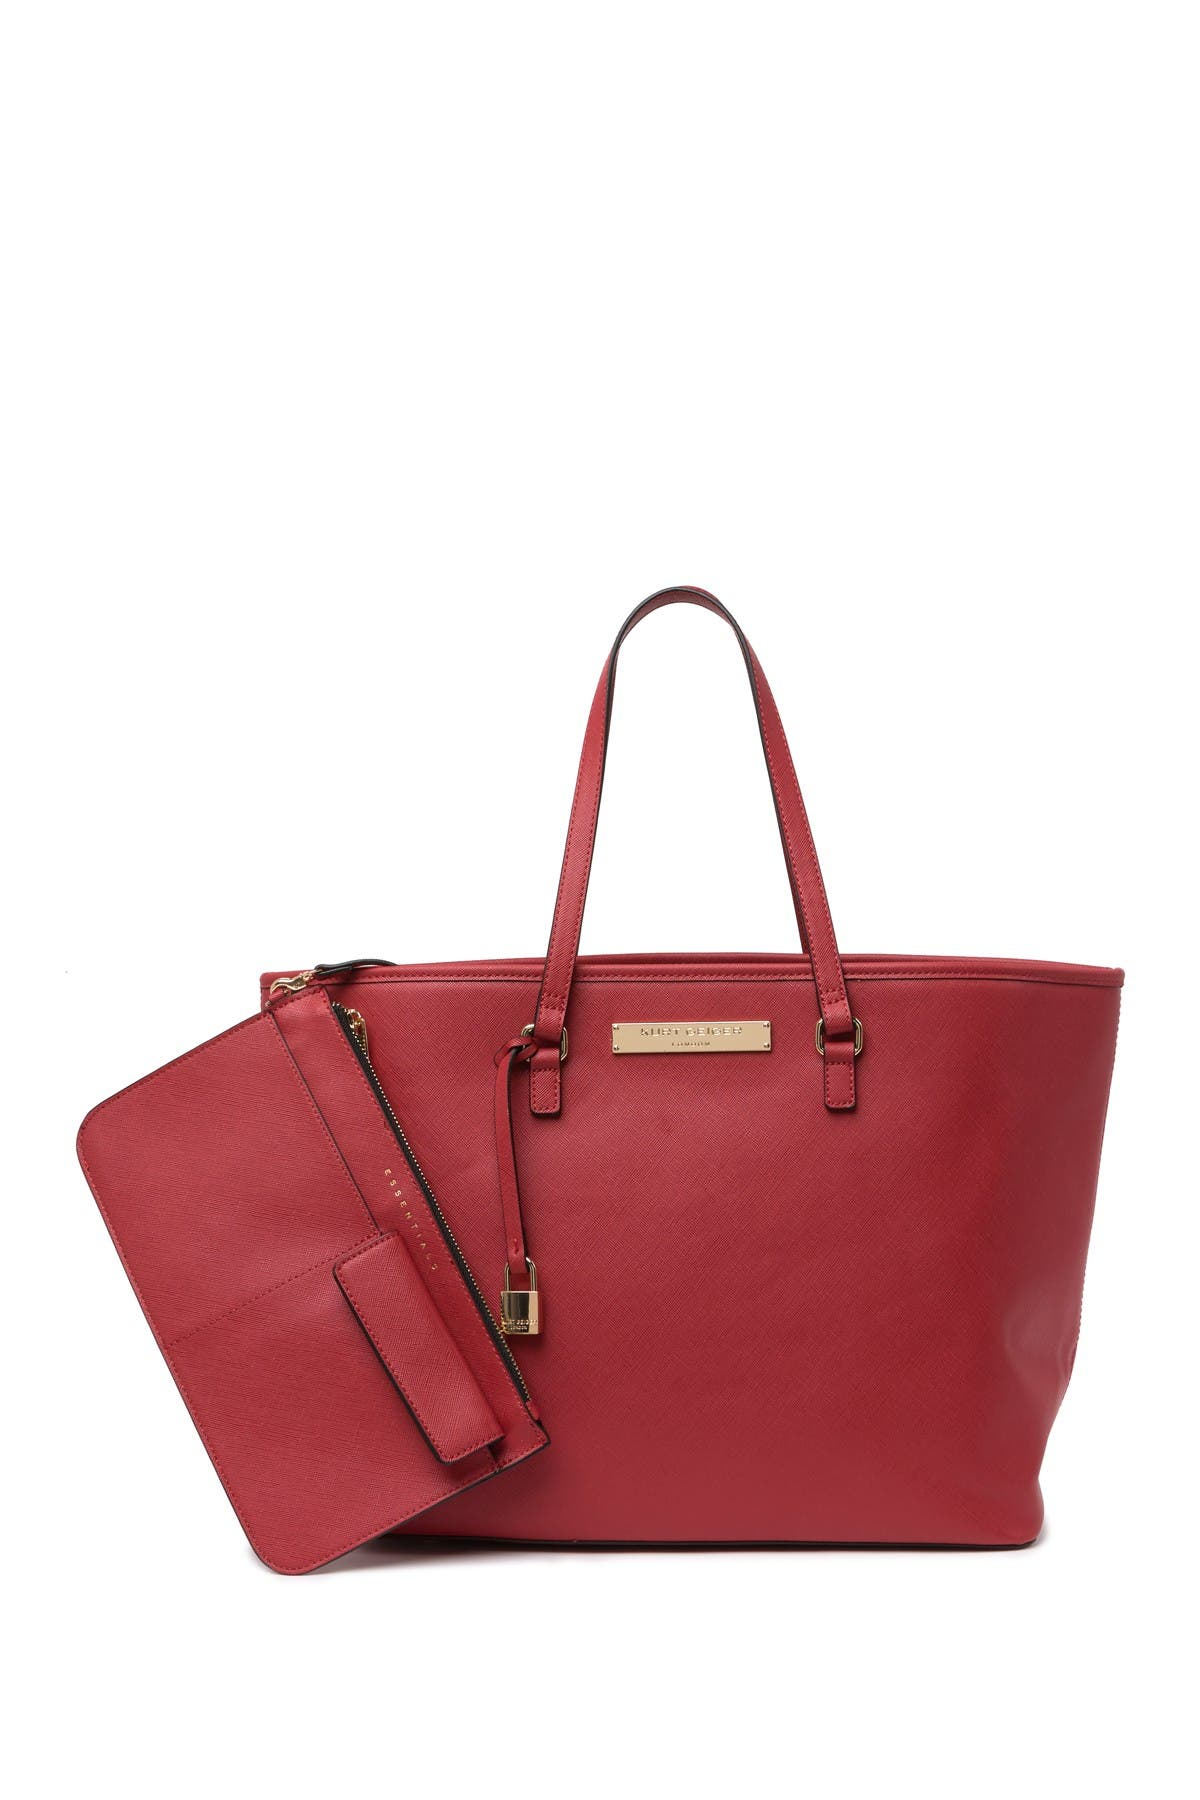 Image of Kurt Geiger London Essex Shopper